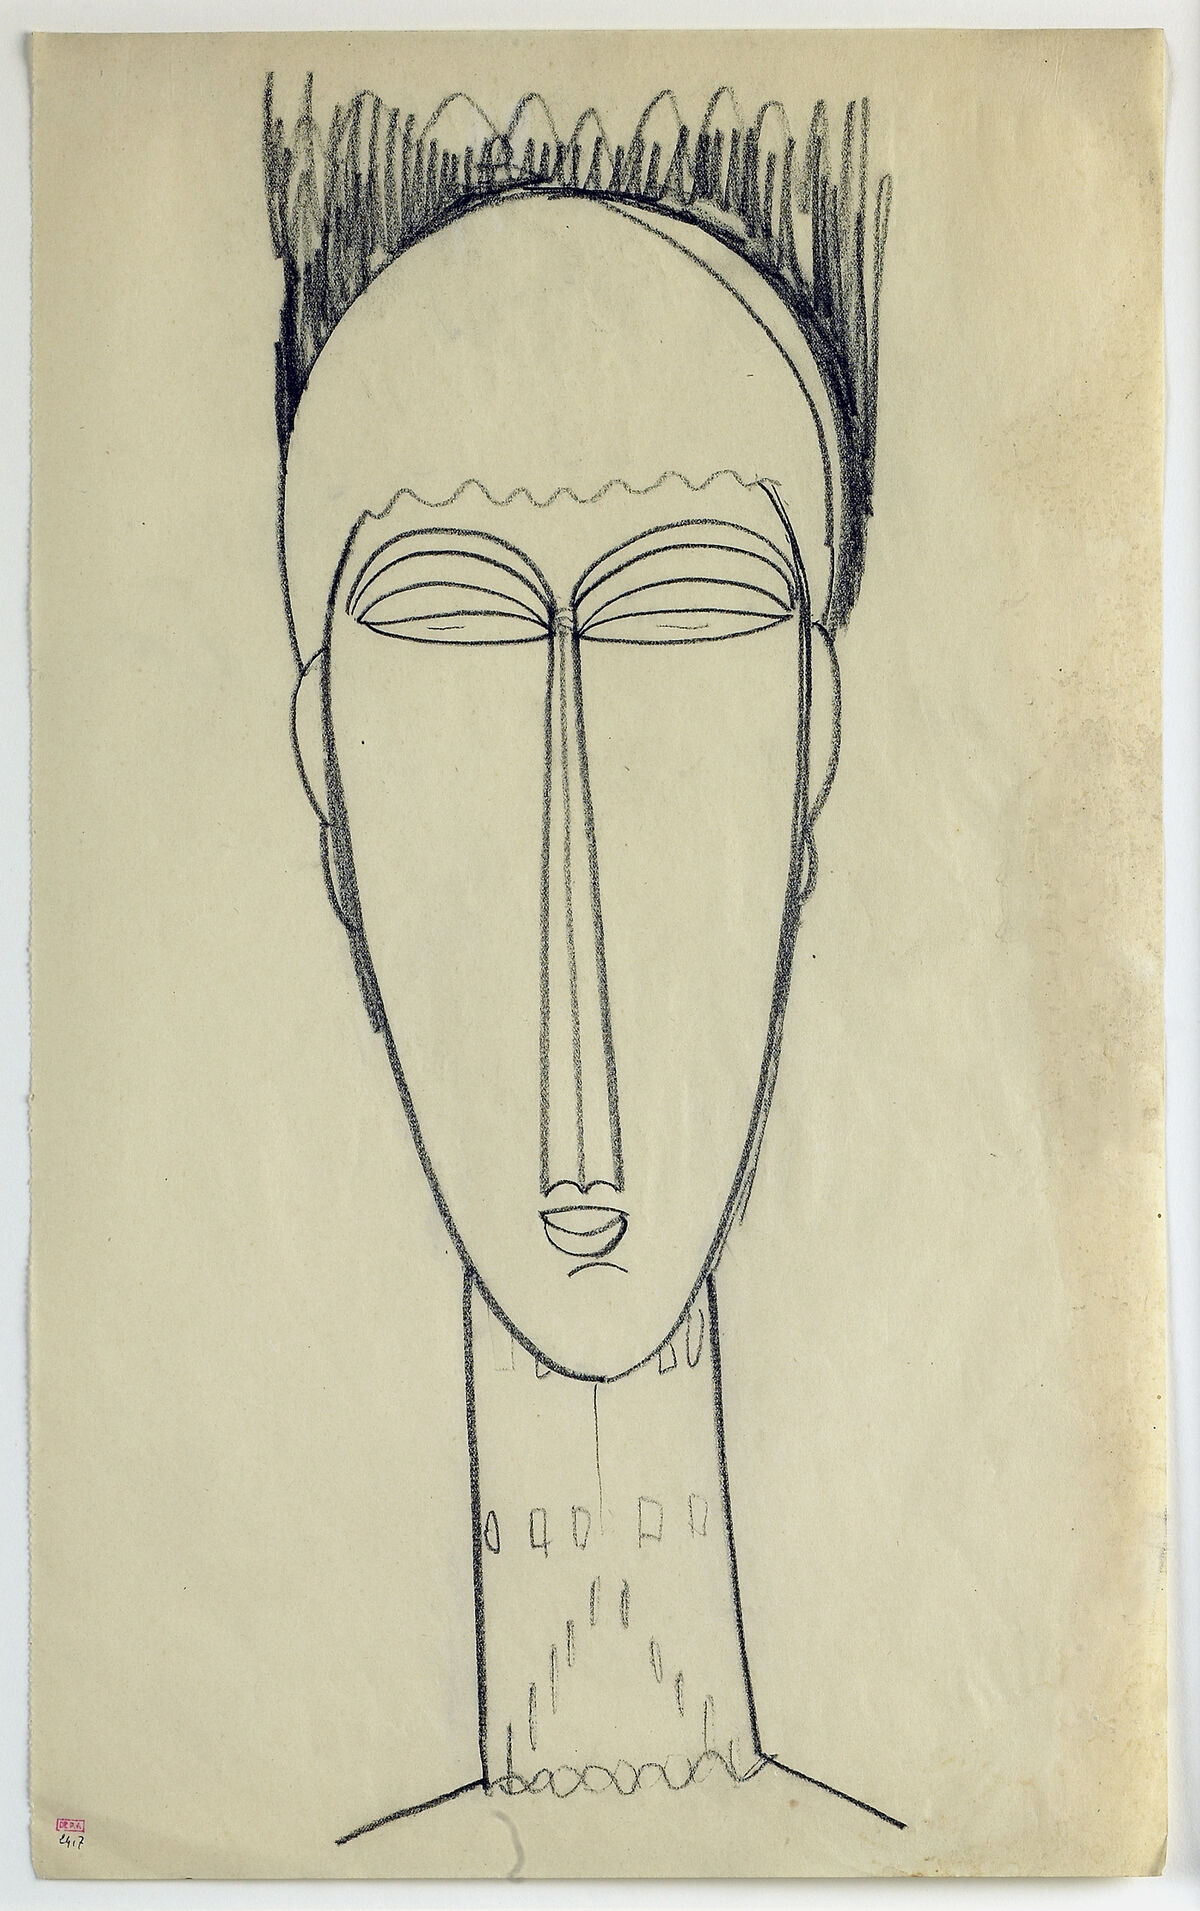 Amedeo Modigliani, Head, c. 1911. Musée des Beaux-Arts, Rouen, Gift of Blaise Alexandre, 2001. Courtesy of the Jewish Museum.